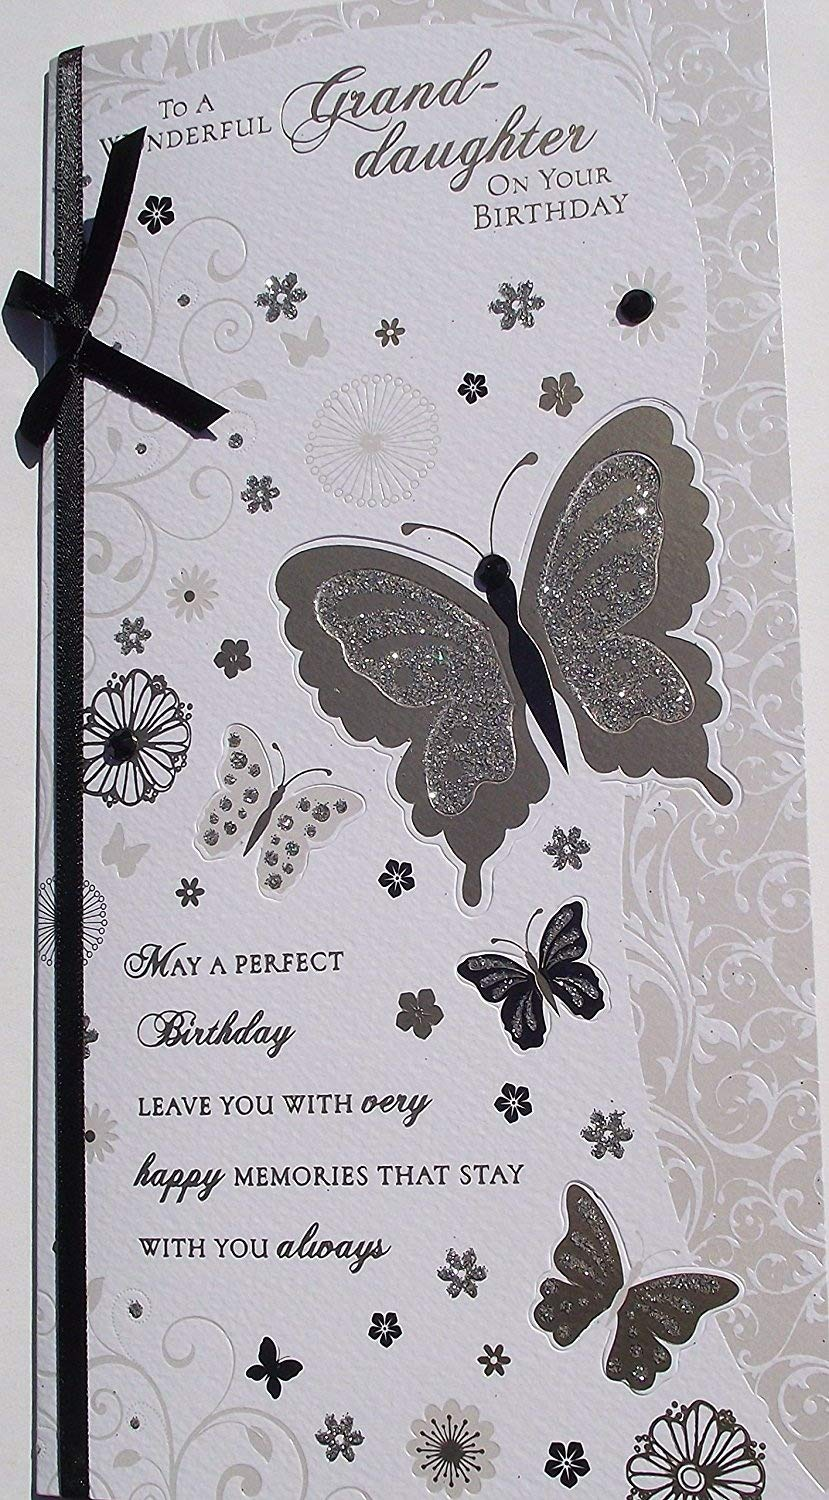 EMBELLISHED ON FRONT BUTTERFLIES GRANDDAUGHTER BIRTHDAY CARD BUTTERFLY